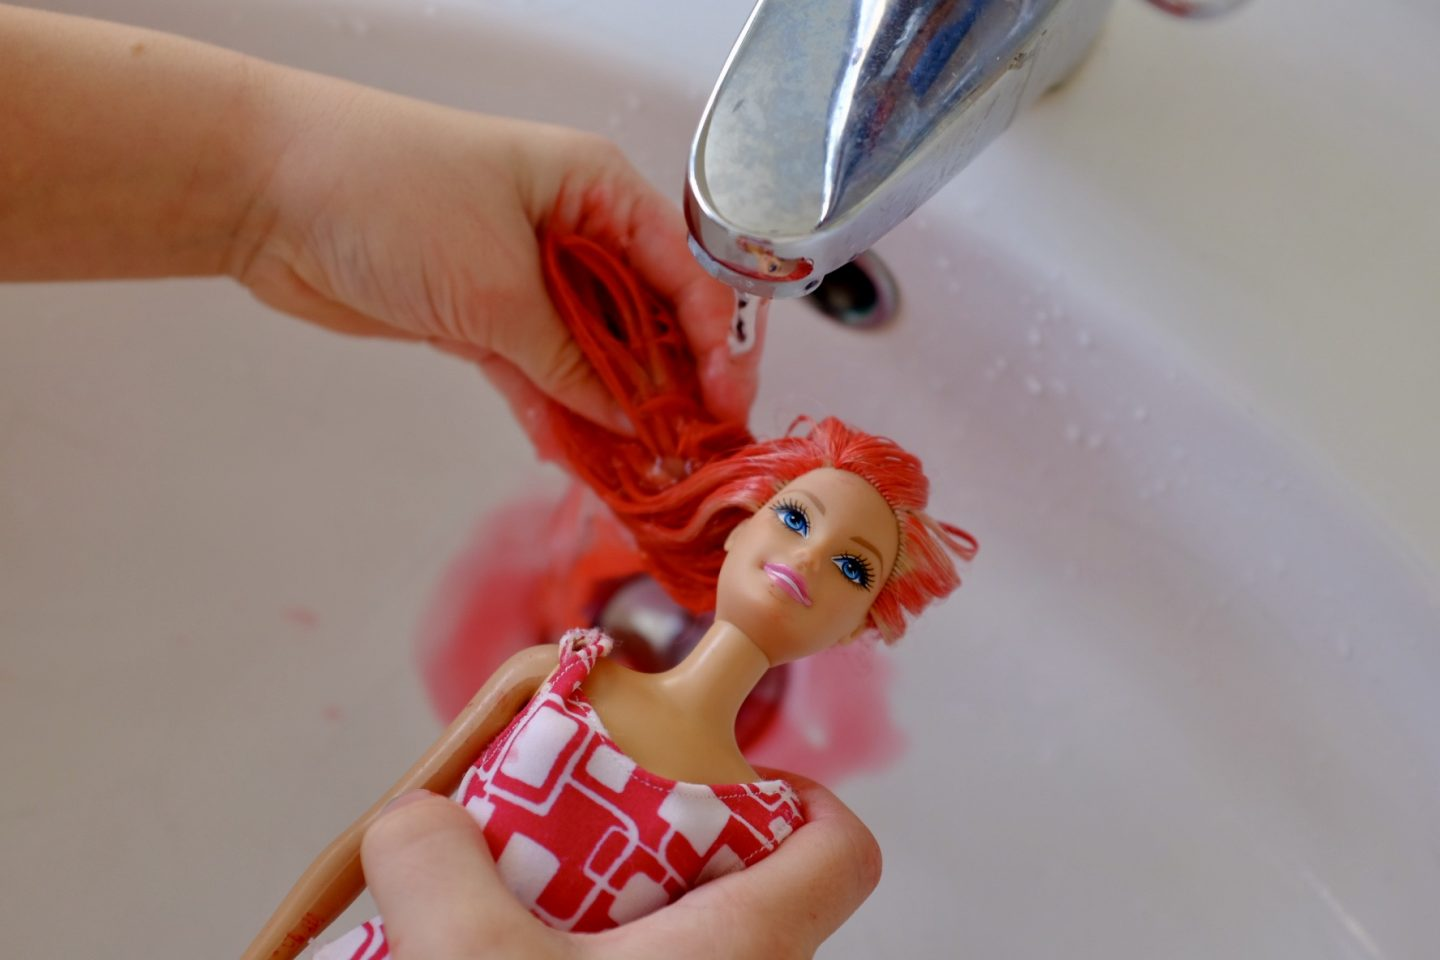 dye a barbie's hair and wash it out